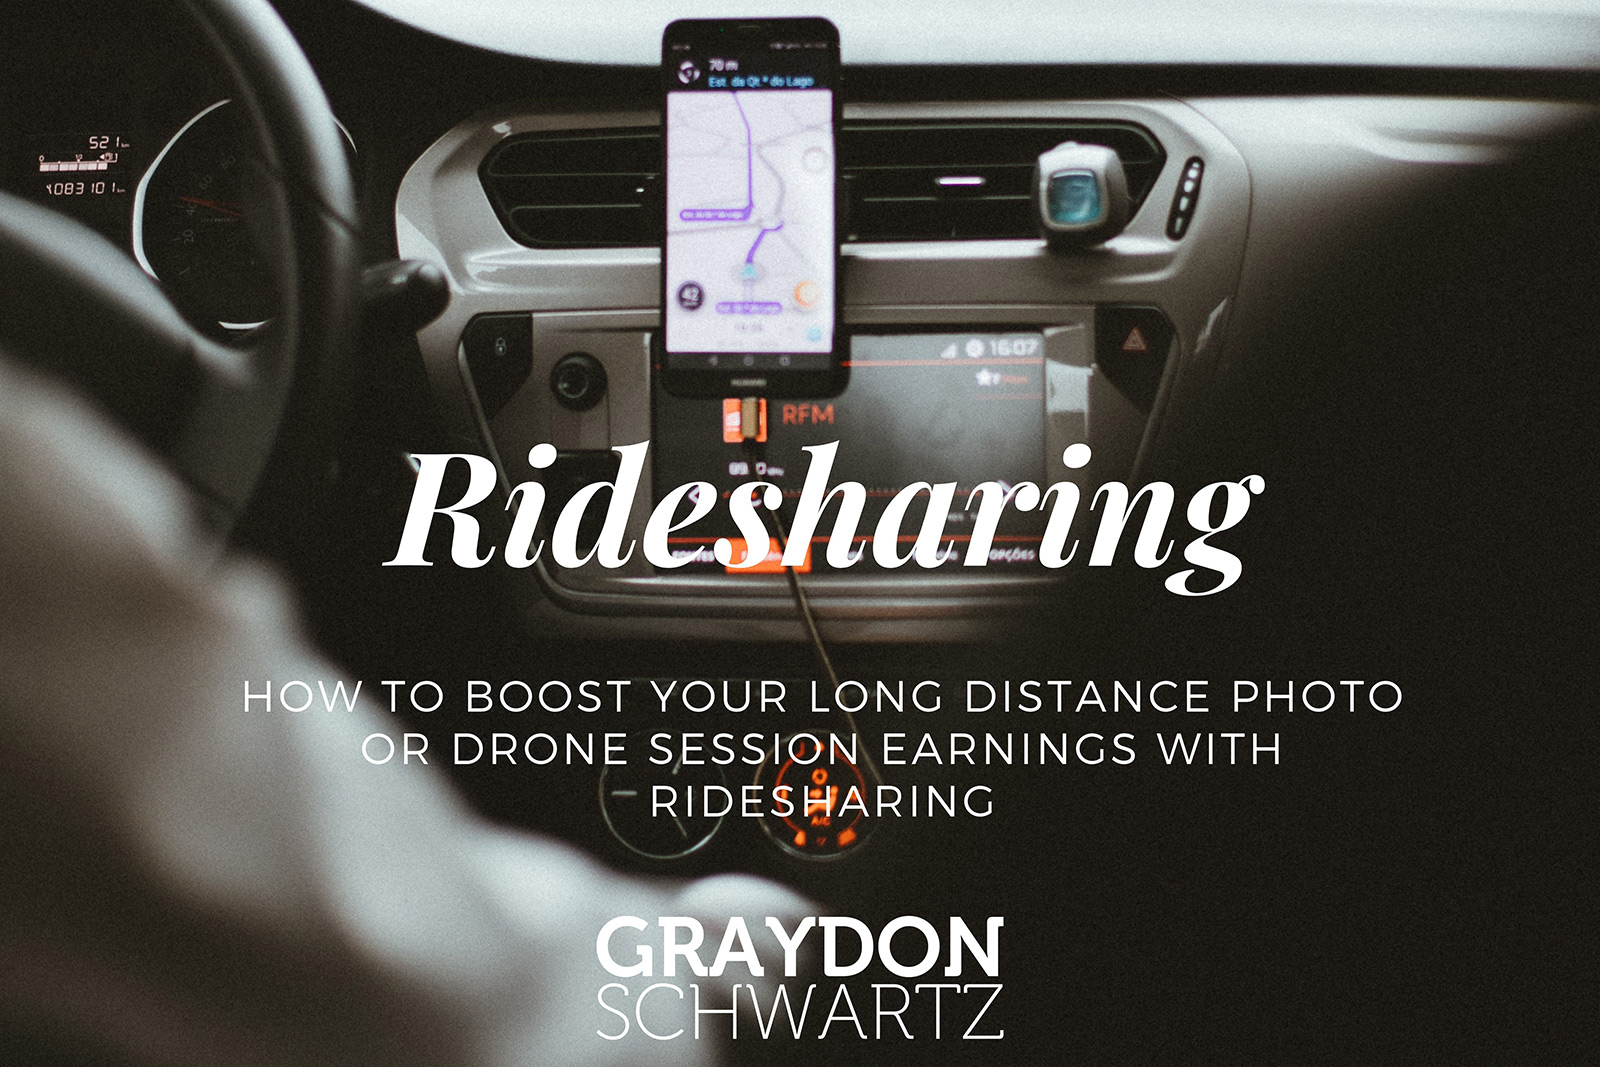 How to Boost Your Long Distance Photo or Drone Session Earnings with Ridesharing